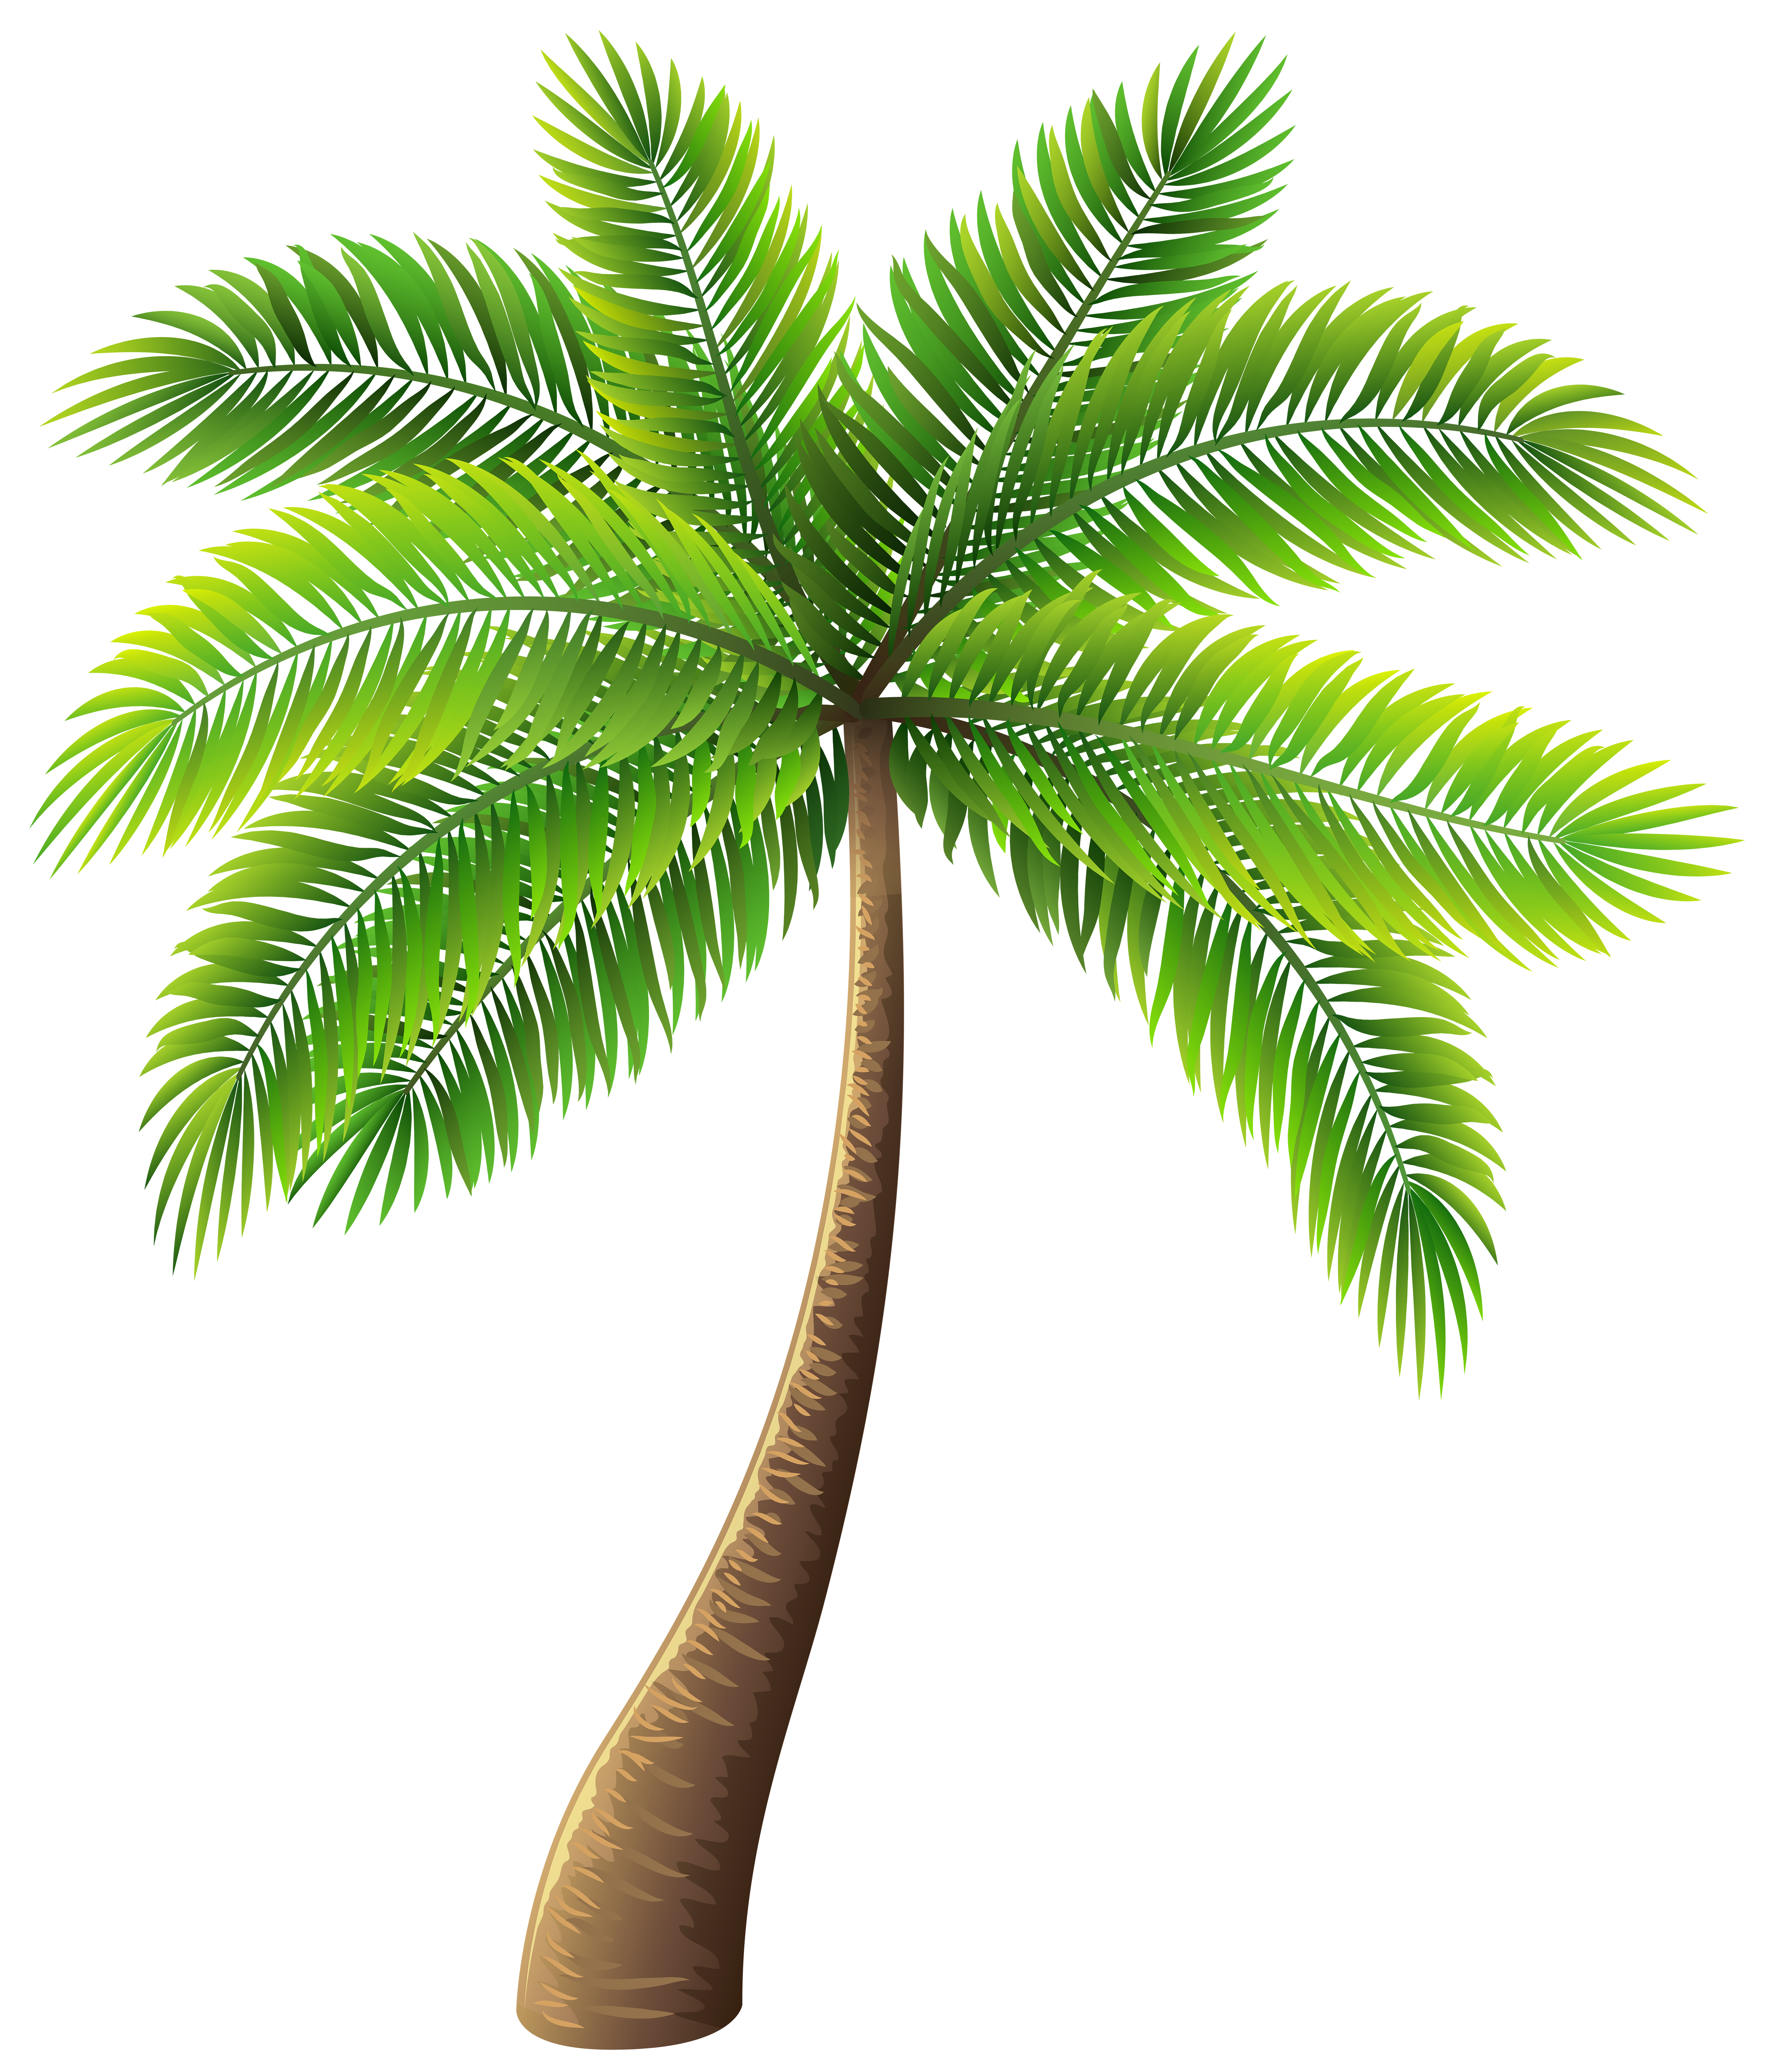 Palm tree vector png. Clip art web clipart